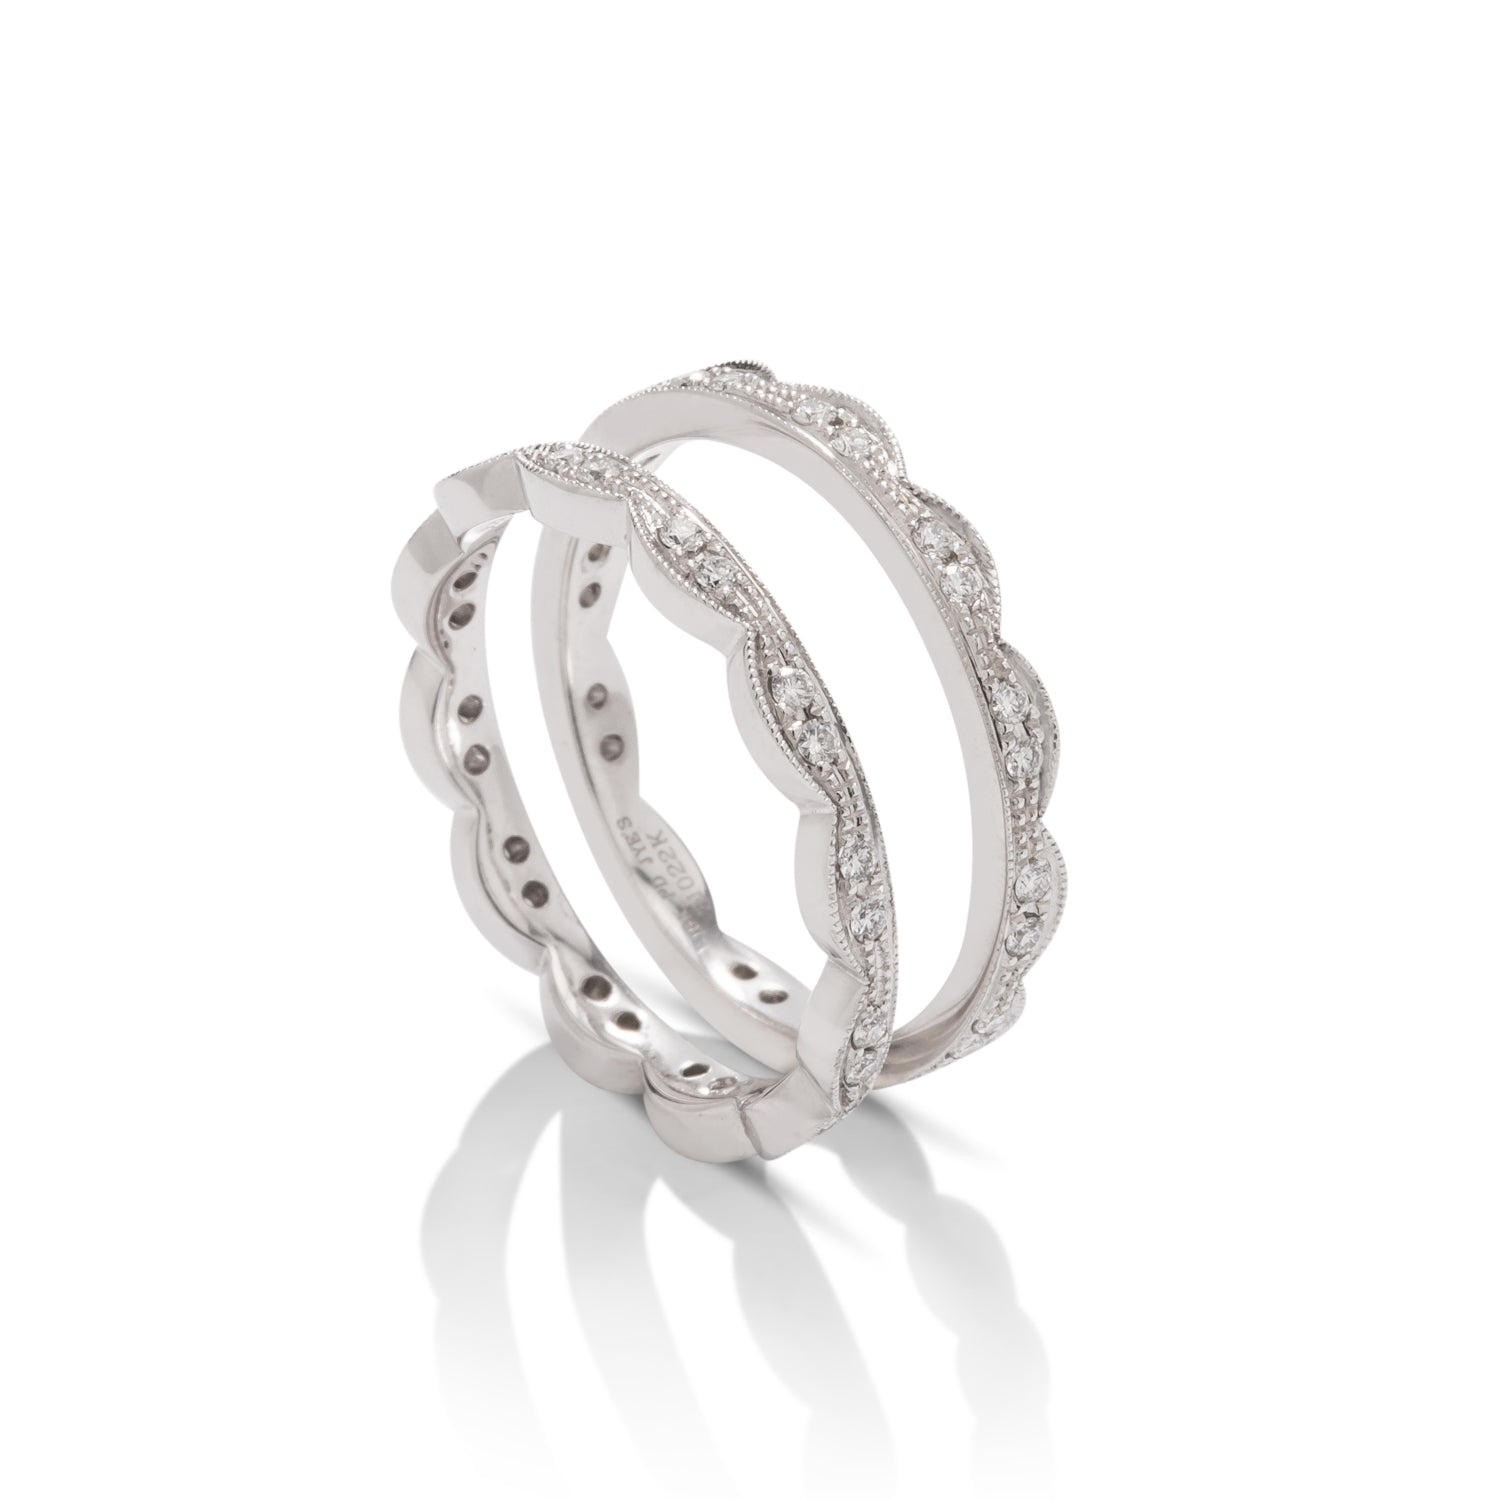 Pair of 18k White Gold Stackable Diamond Rings - Charles Koll Jewellers